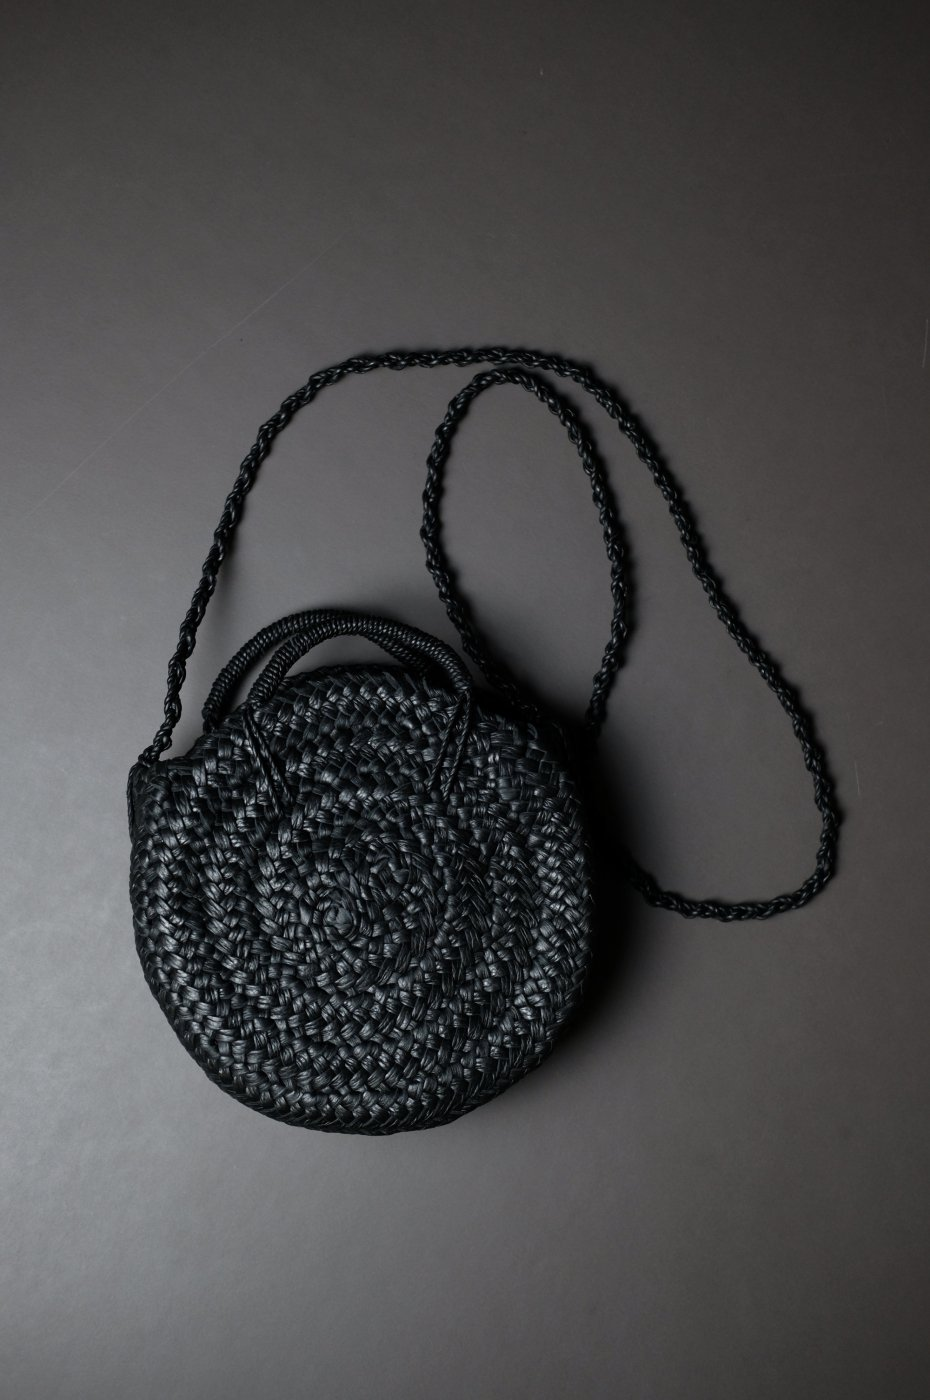 Aeta アエタ-KG CIRCLE BASKET S -BLACK-